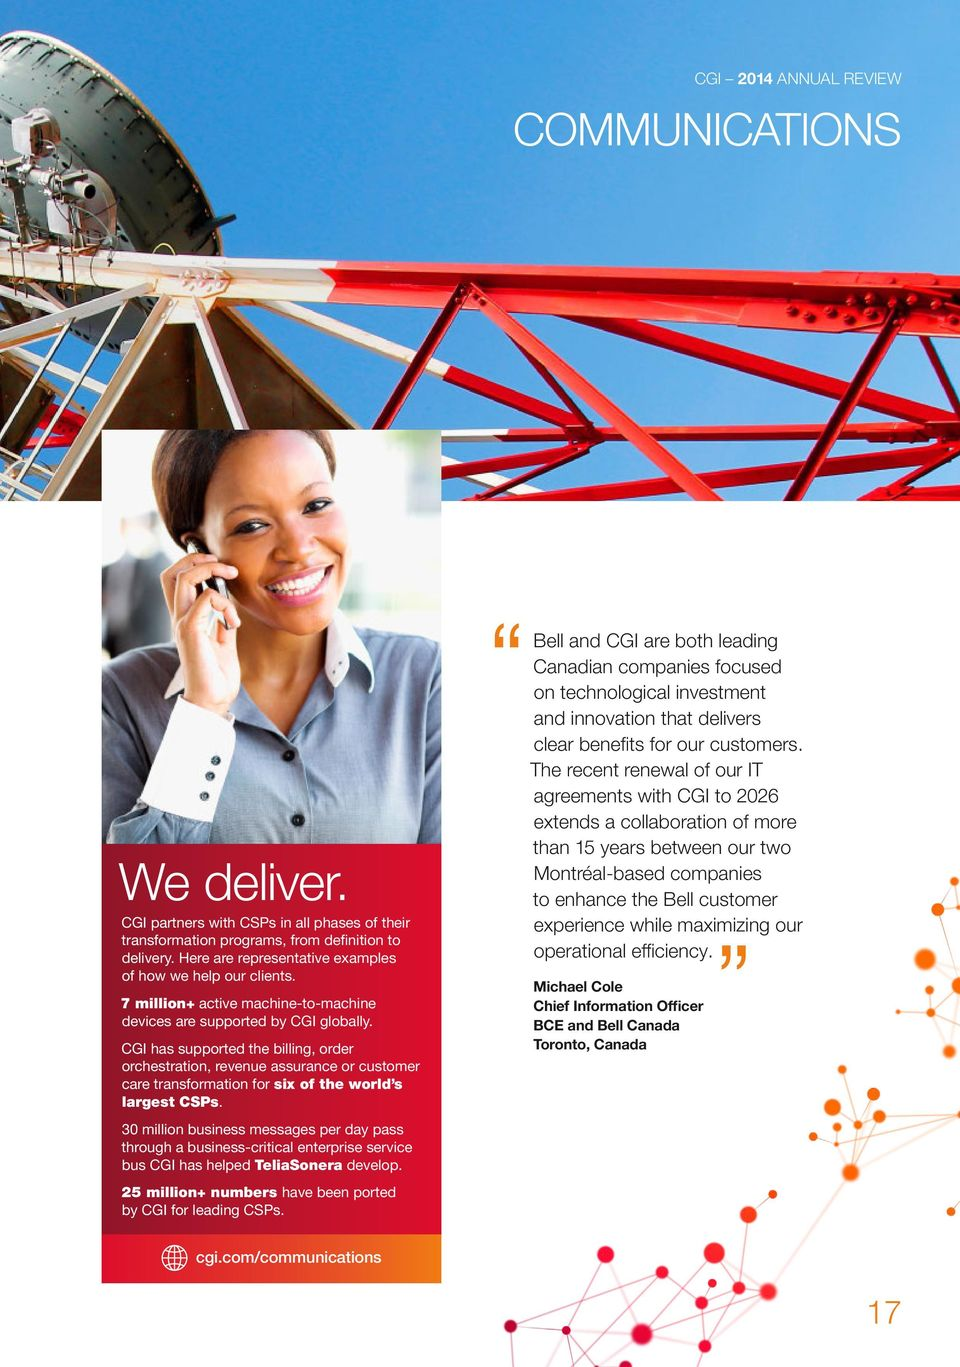 CGI has supported the billing, order orchestration, revenue assurance or customer care transformation for six of the world s largest CSPs.